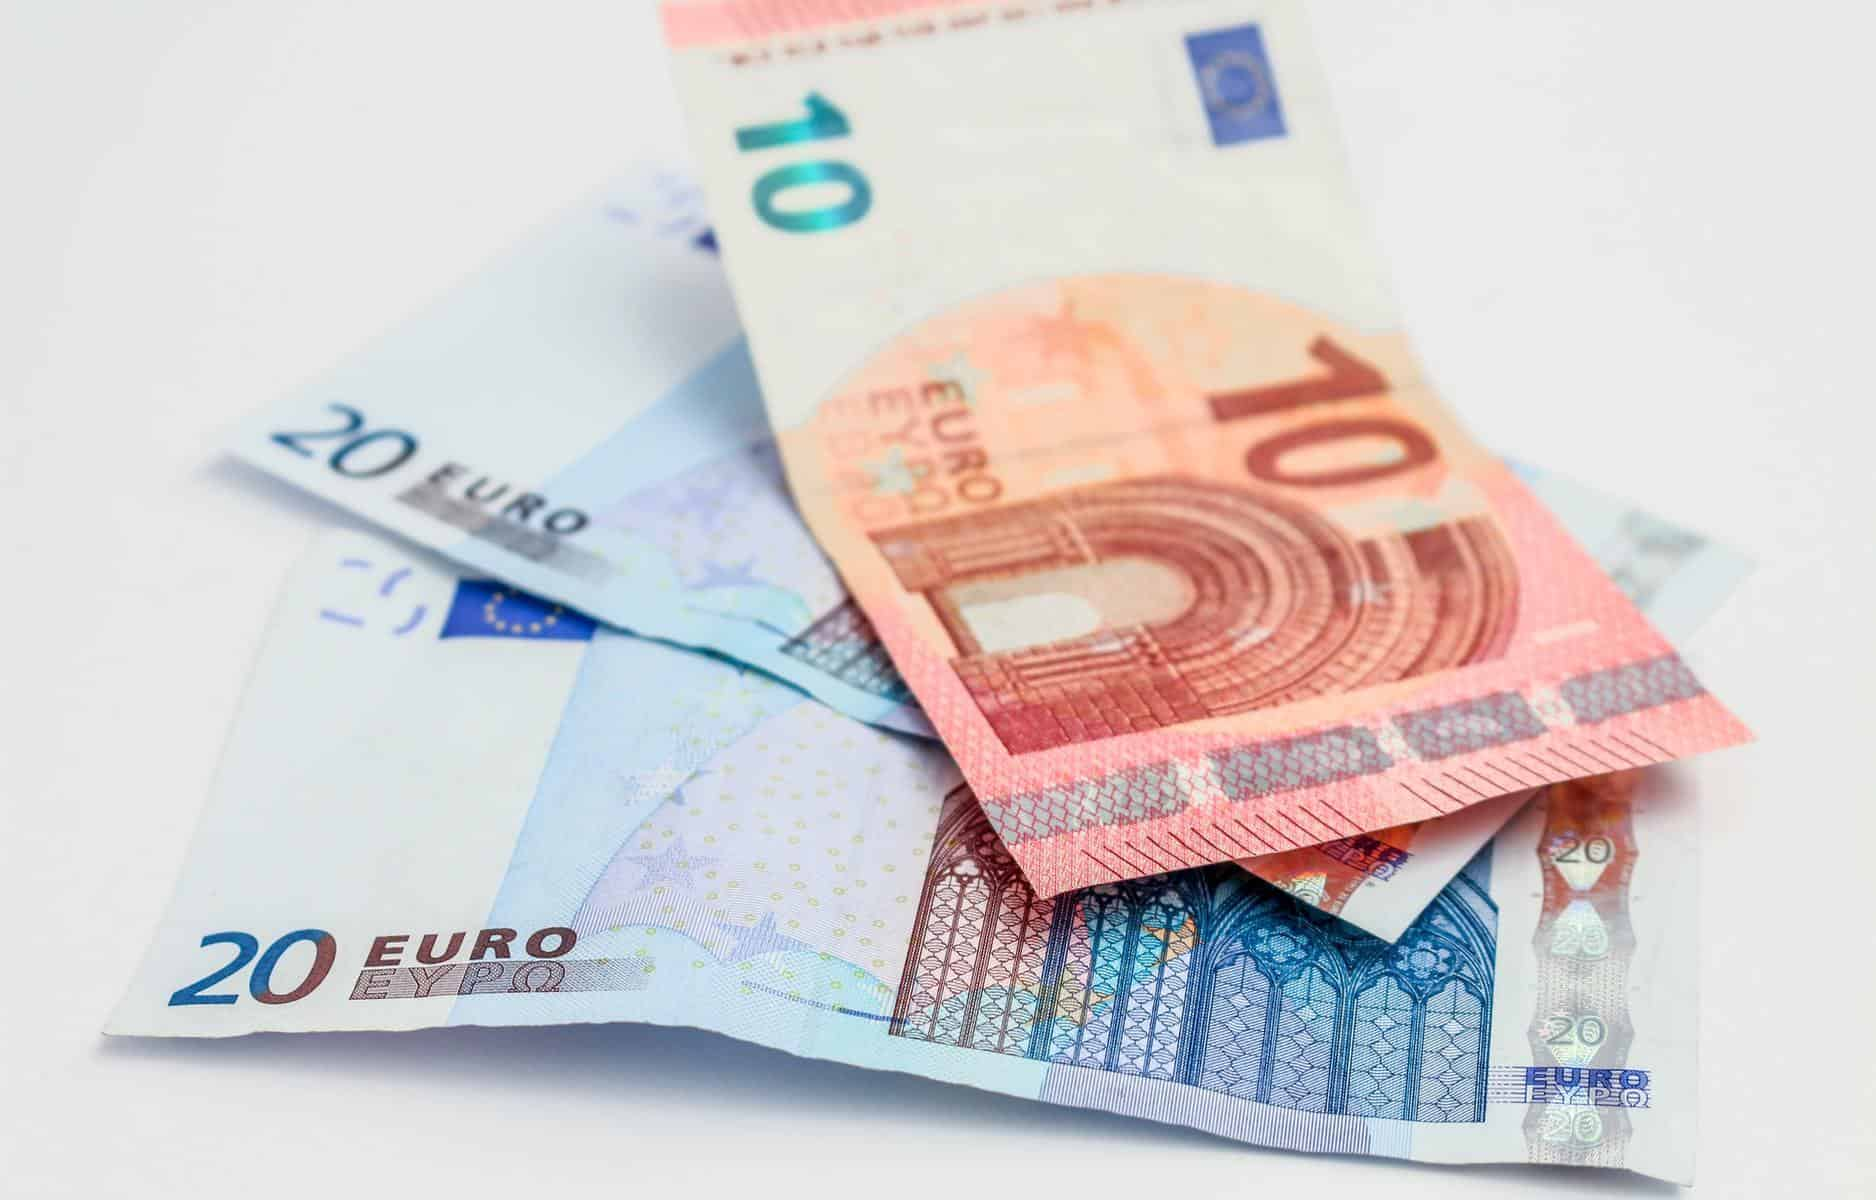 3 Euro banknotes on table